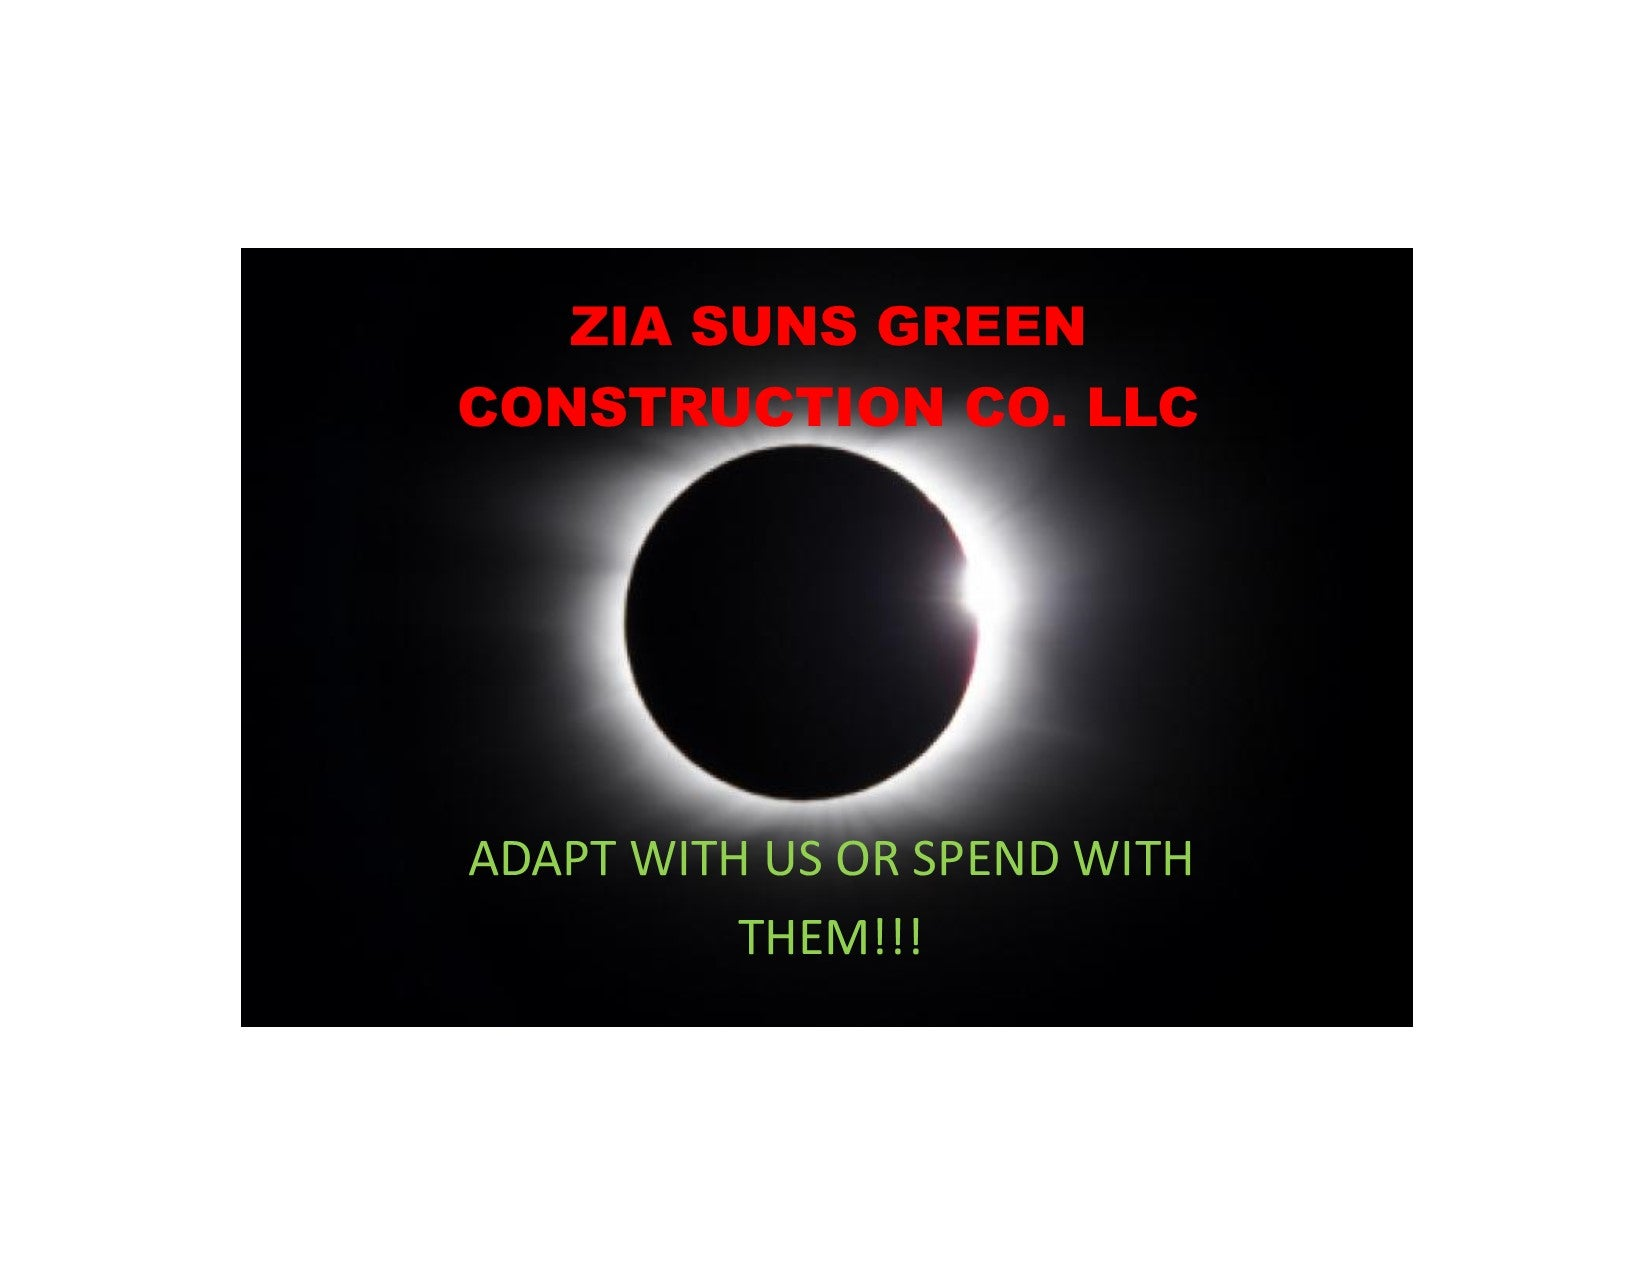 Zia Suns Green Construction Co. LLC